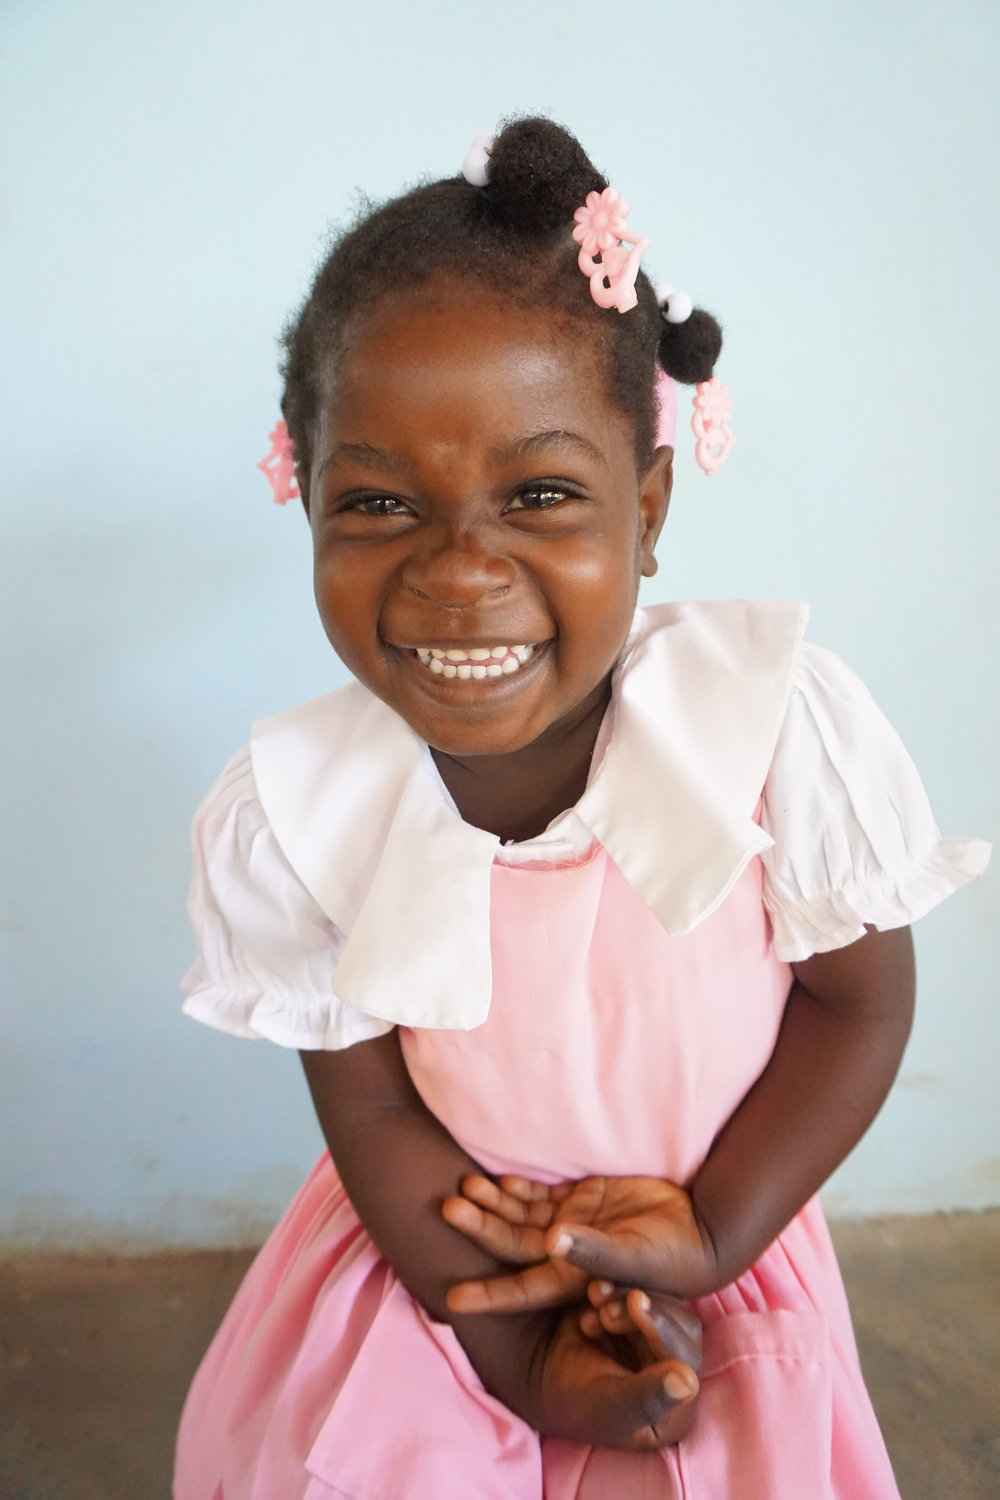 Sponsor a student - Your monthly donation helps us to cover our school operating costs and continue our mission of awakening education in Haiti.Your donation will mainly help to fund our daily breakfast & lunch program, electricity and water needs, and salaries for our Haitian staff. This allows us to keep our tuition low and affordable for our students families (about a dollar a month) while meeting their needs and giving them the best education possible. Thank you for your generosity and sacrifice! We pray this will bless you and your family.